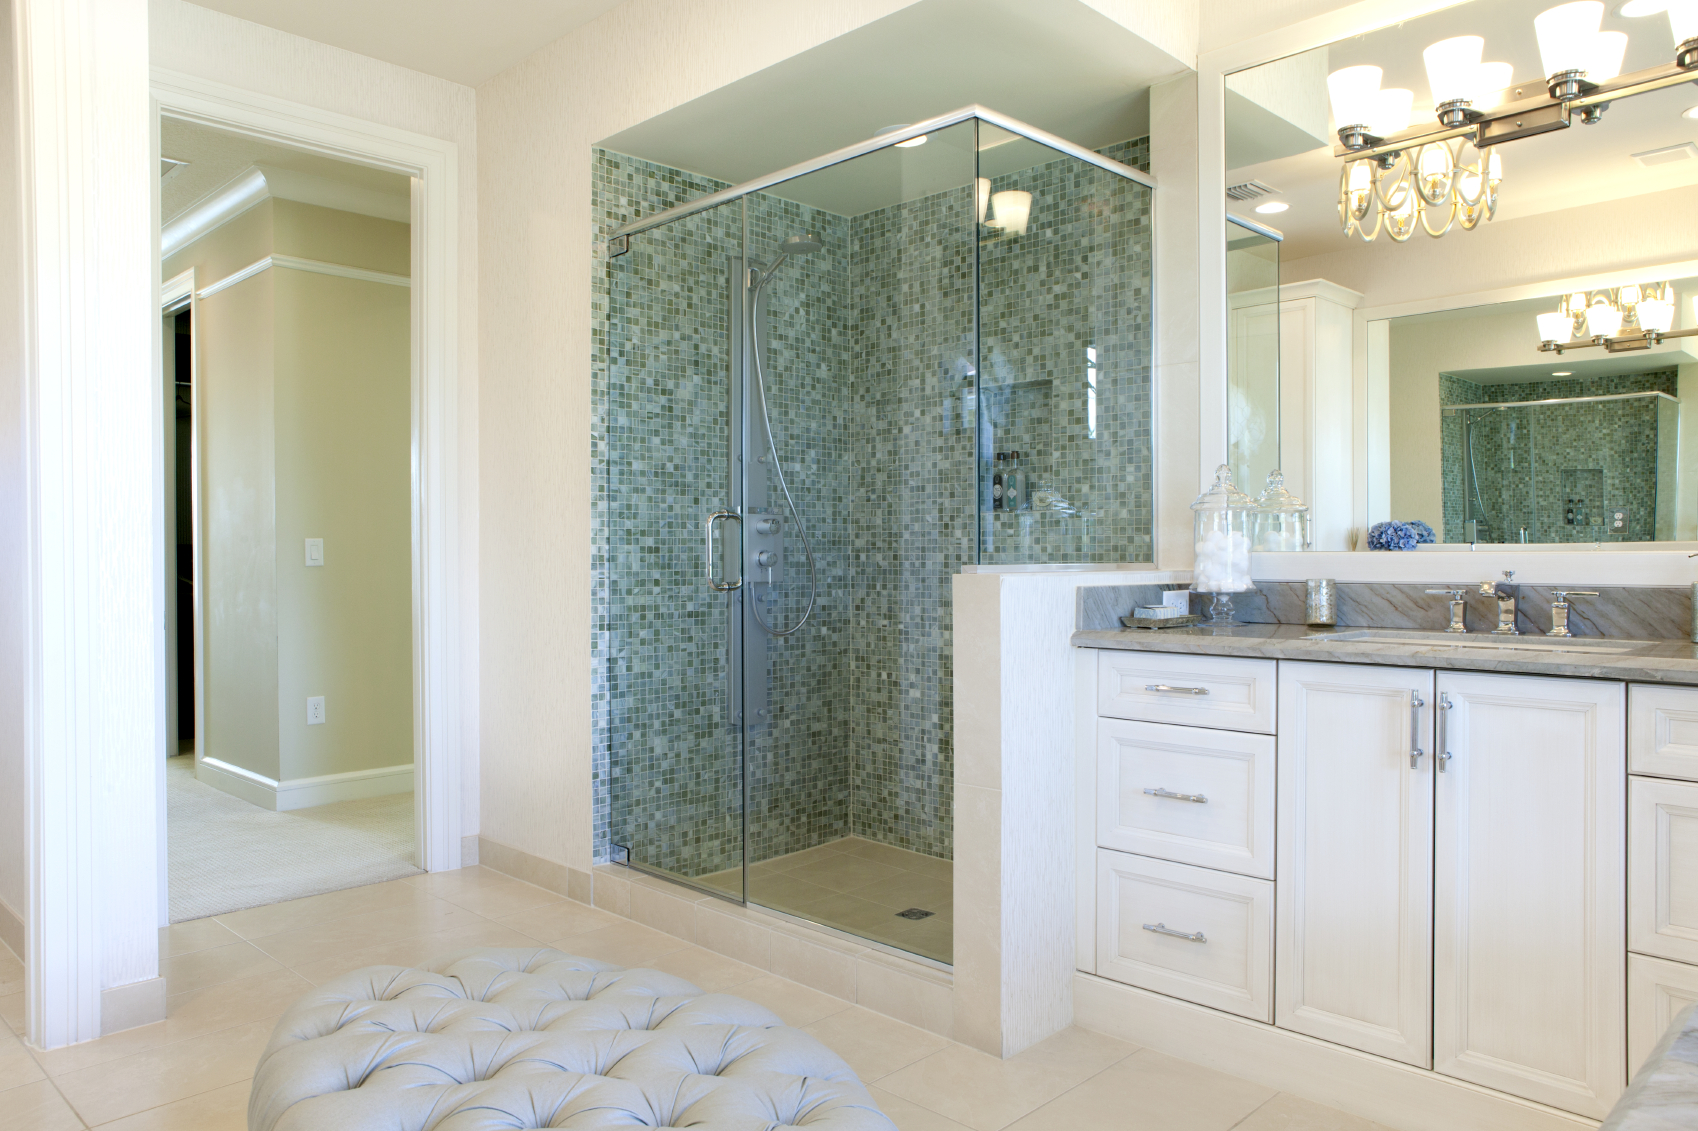 Shower Replacement Cost Surdus Remodeling - Bathroom shower replacement cost